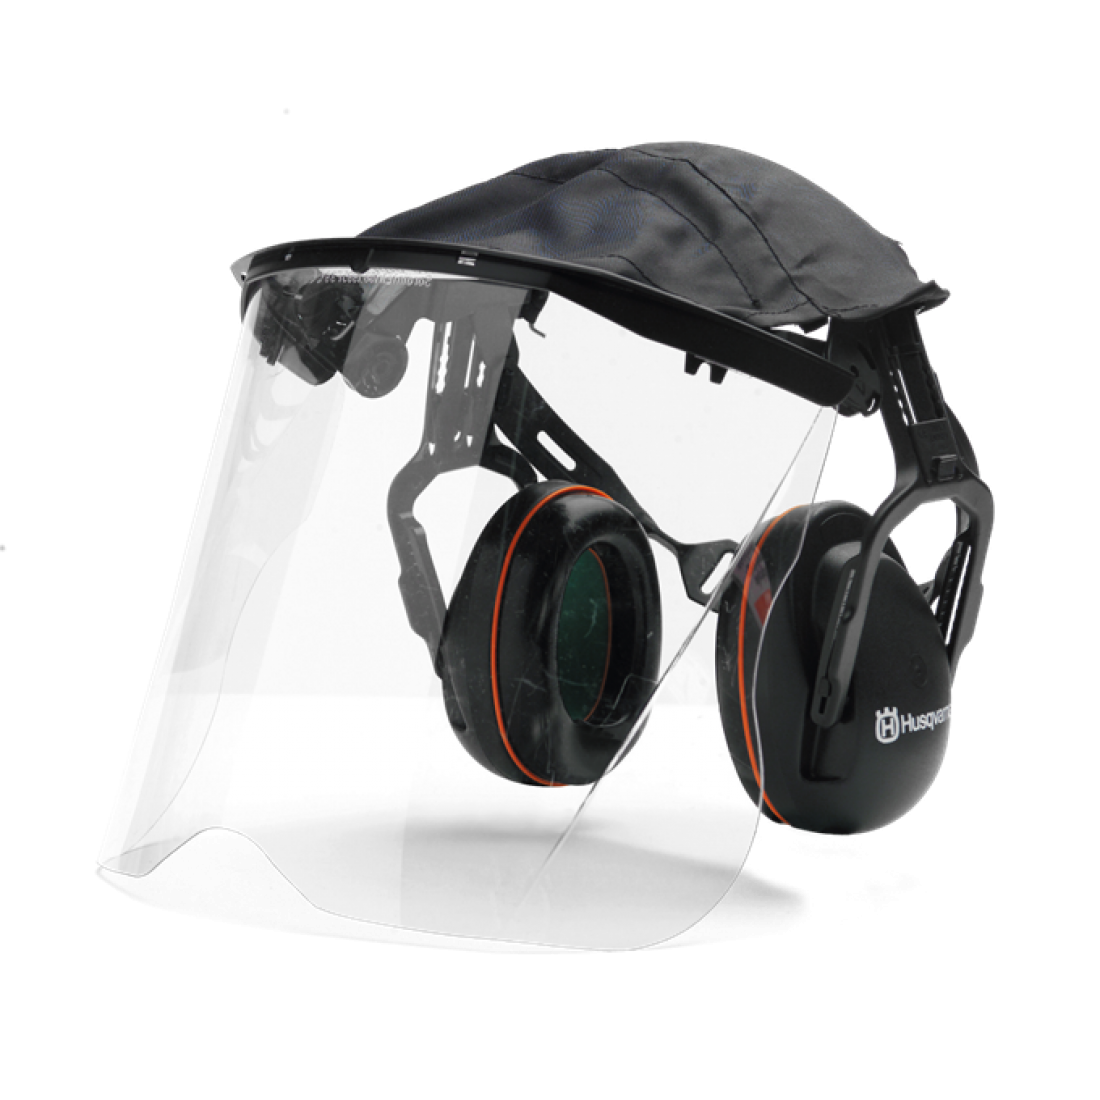 Transparent visors perspex. Husqvarna hearing protection with